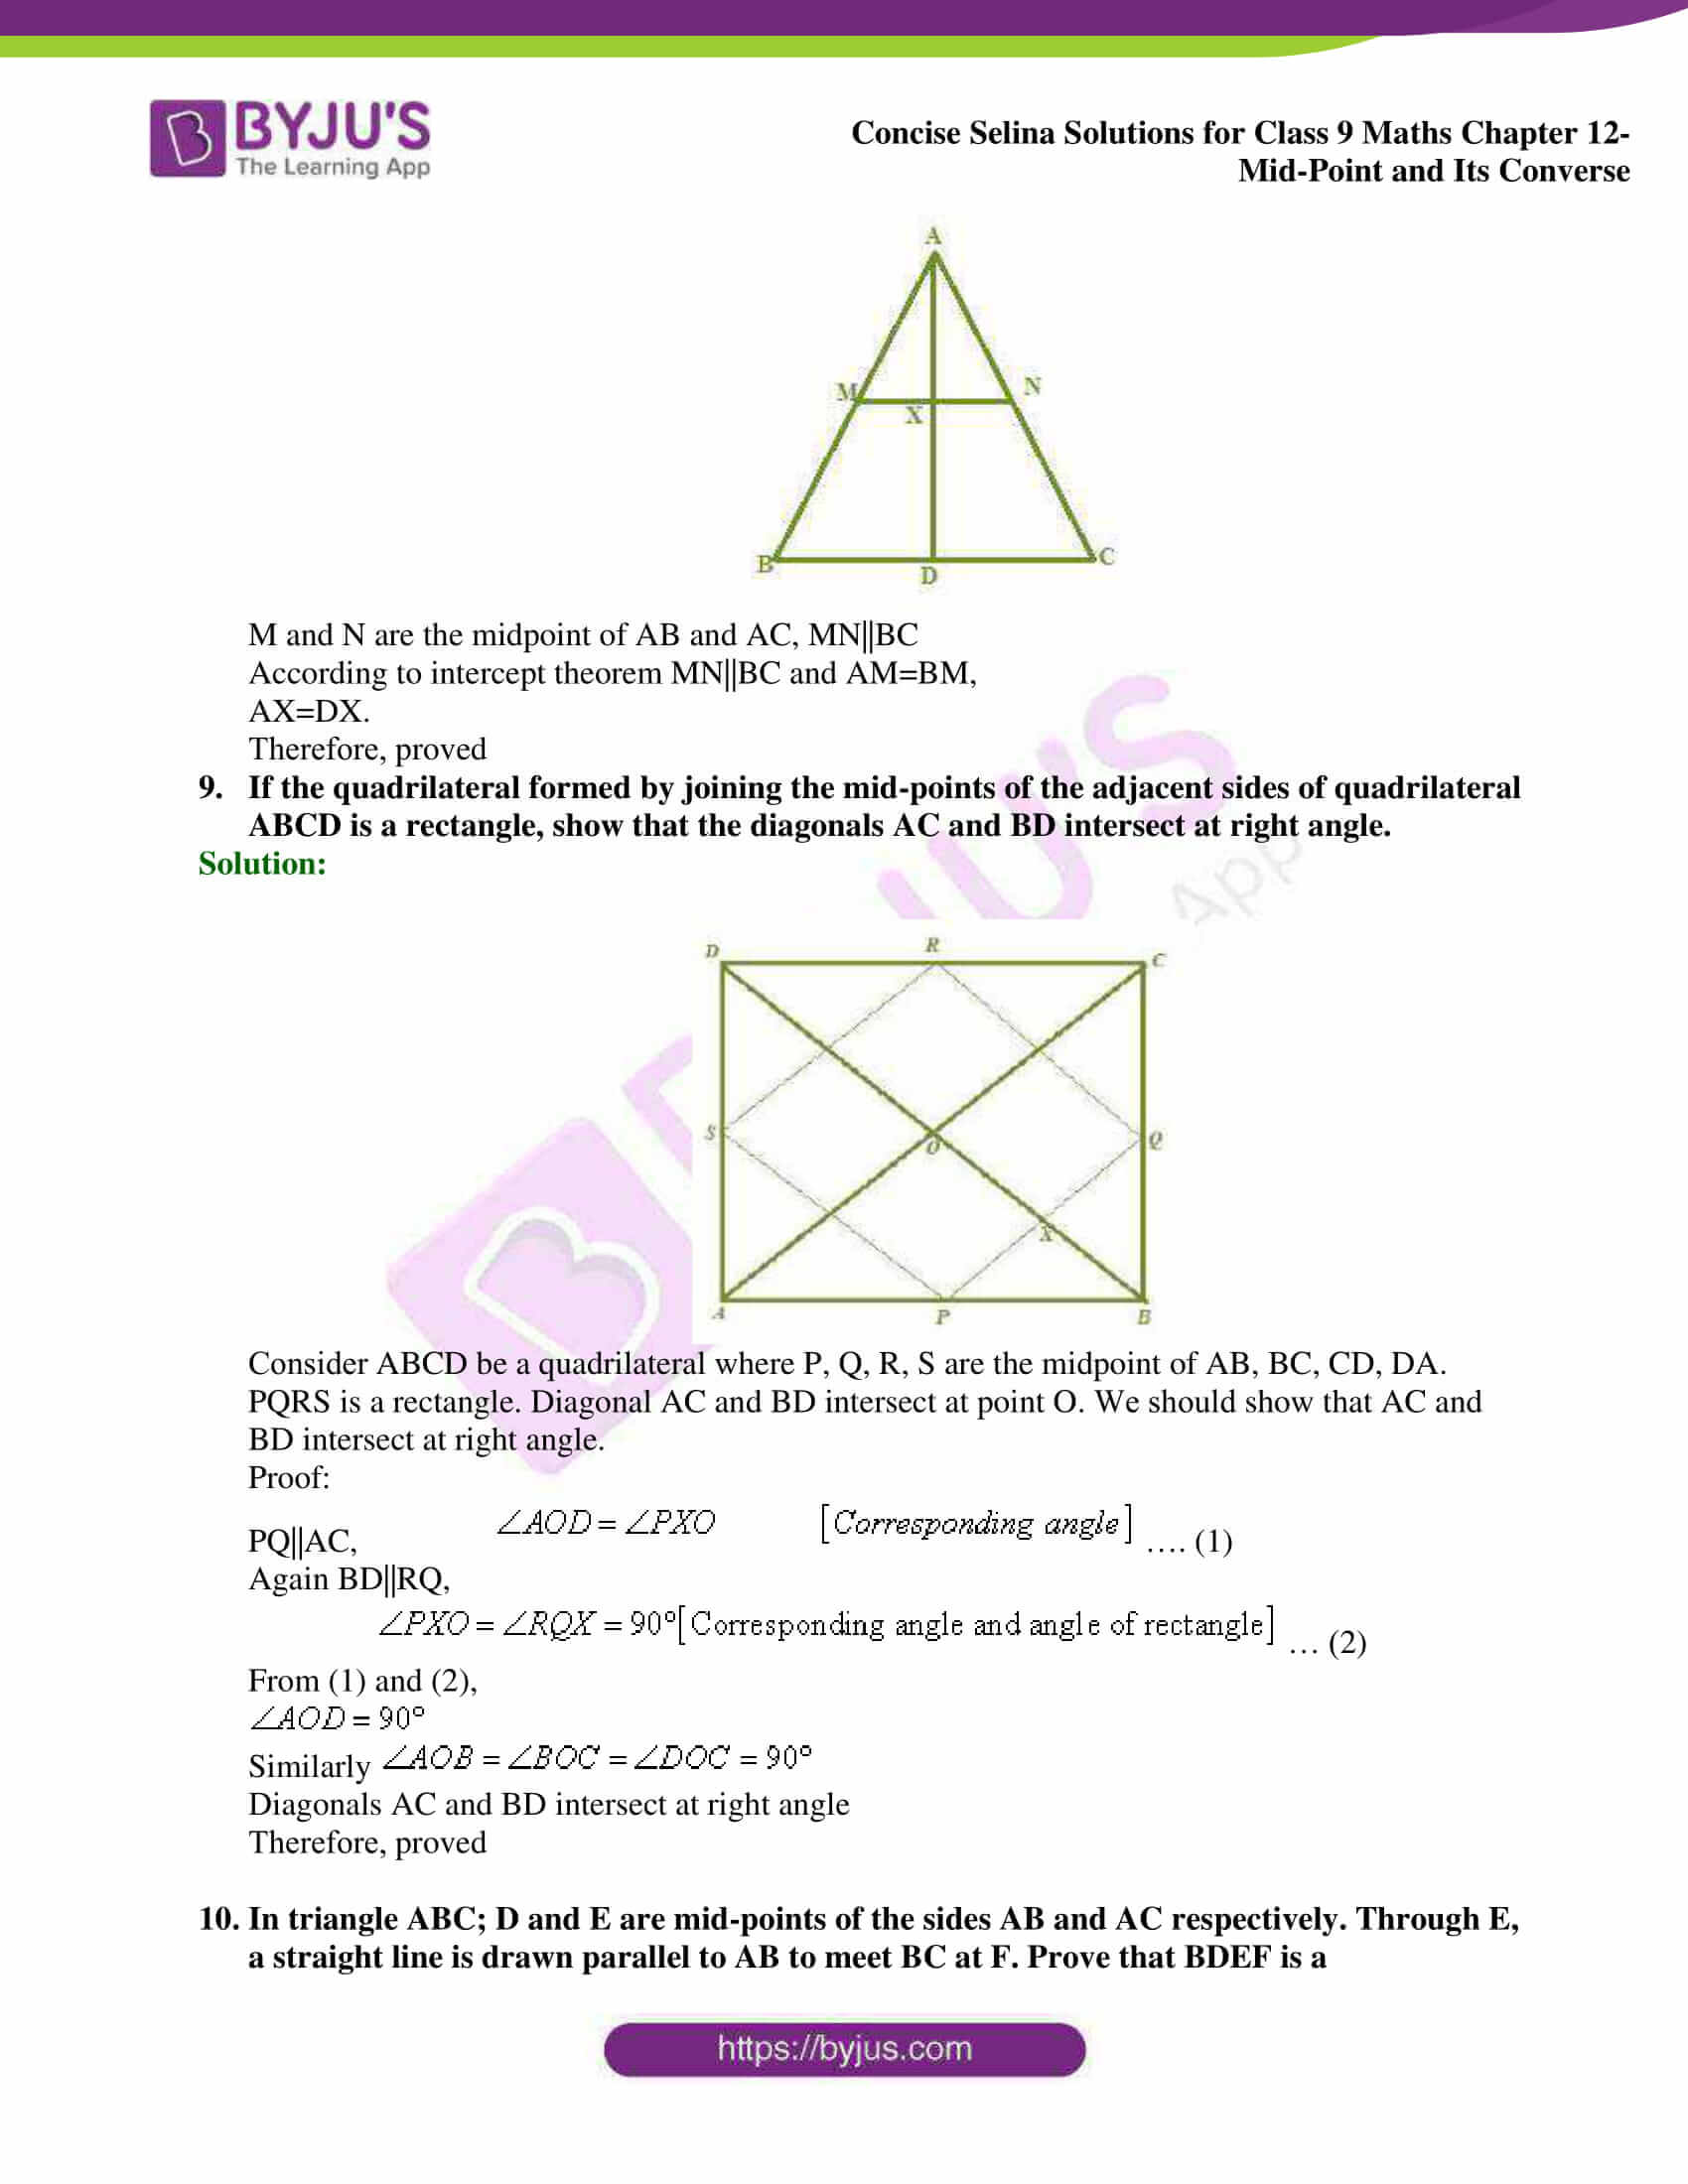 selina Solutions for Class 9 Maths Chapter 12 18